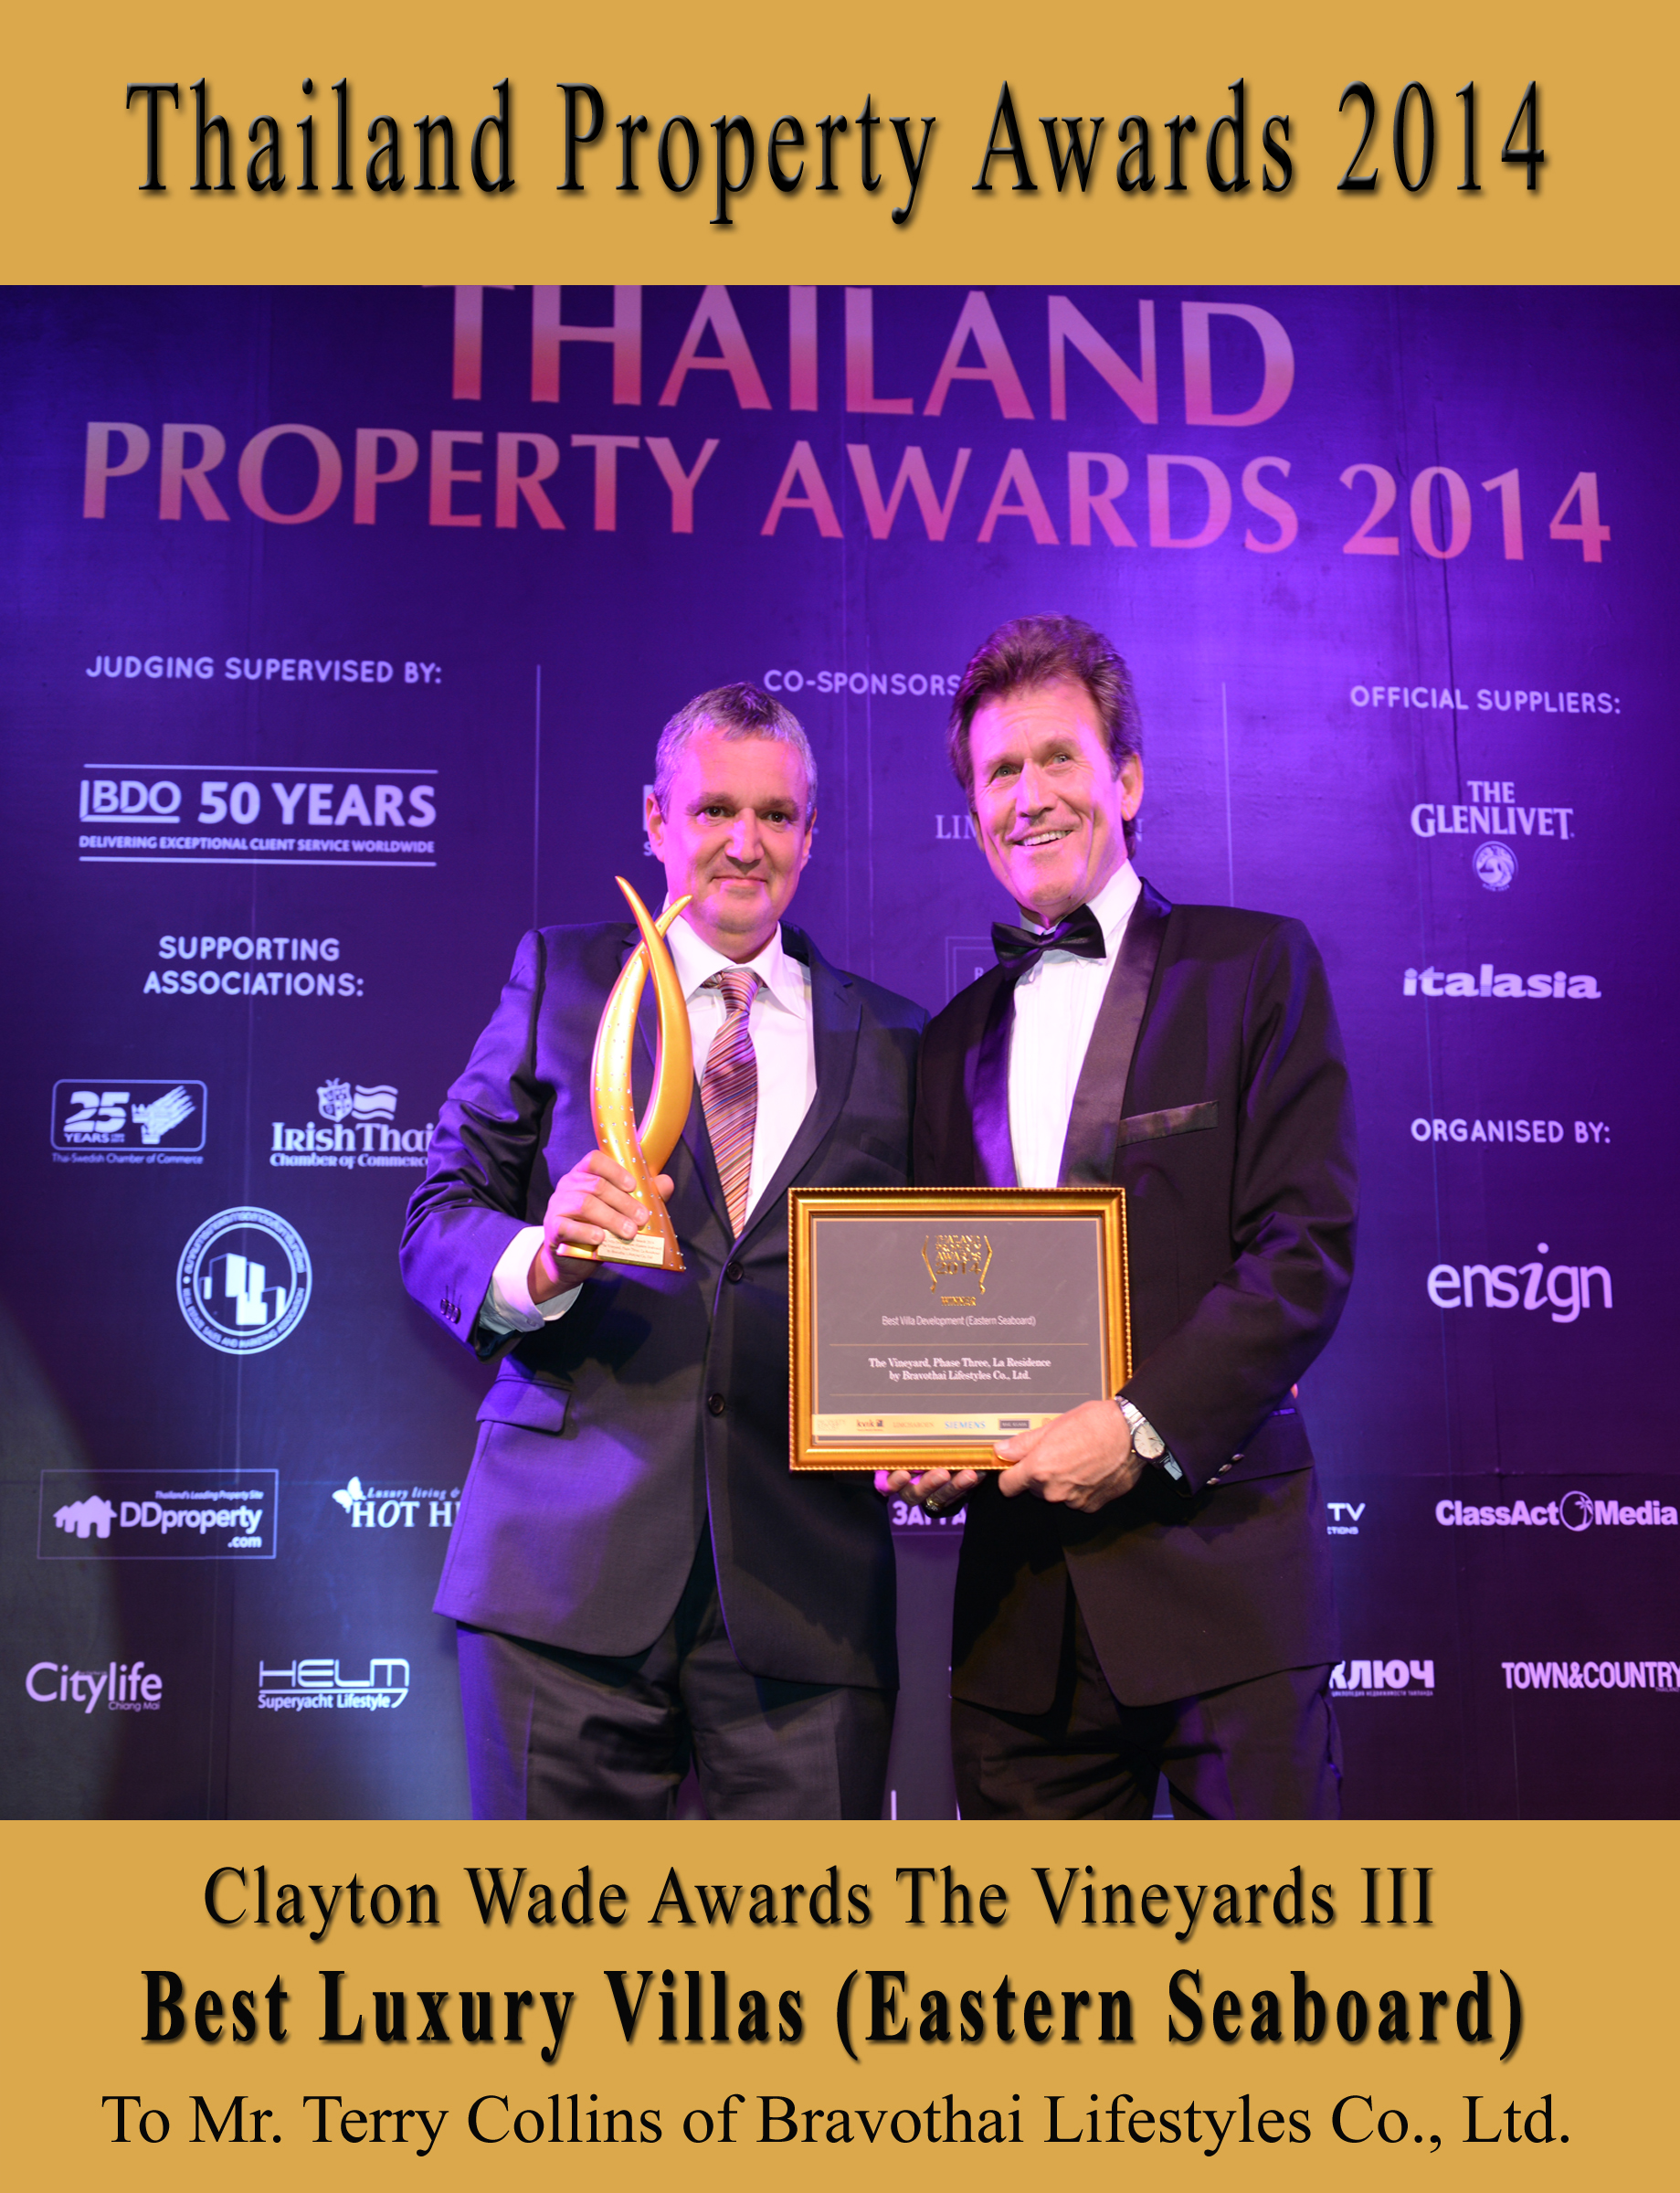 Thailand Property Awards 2014 - pic 1